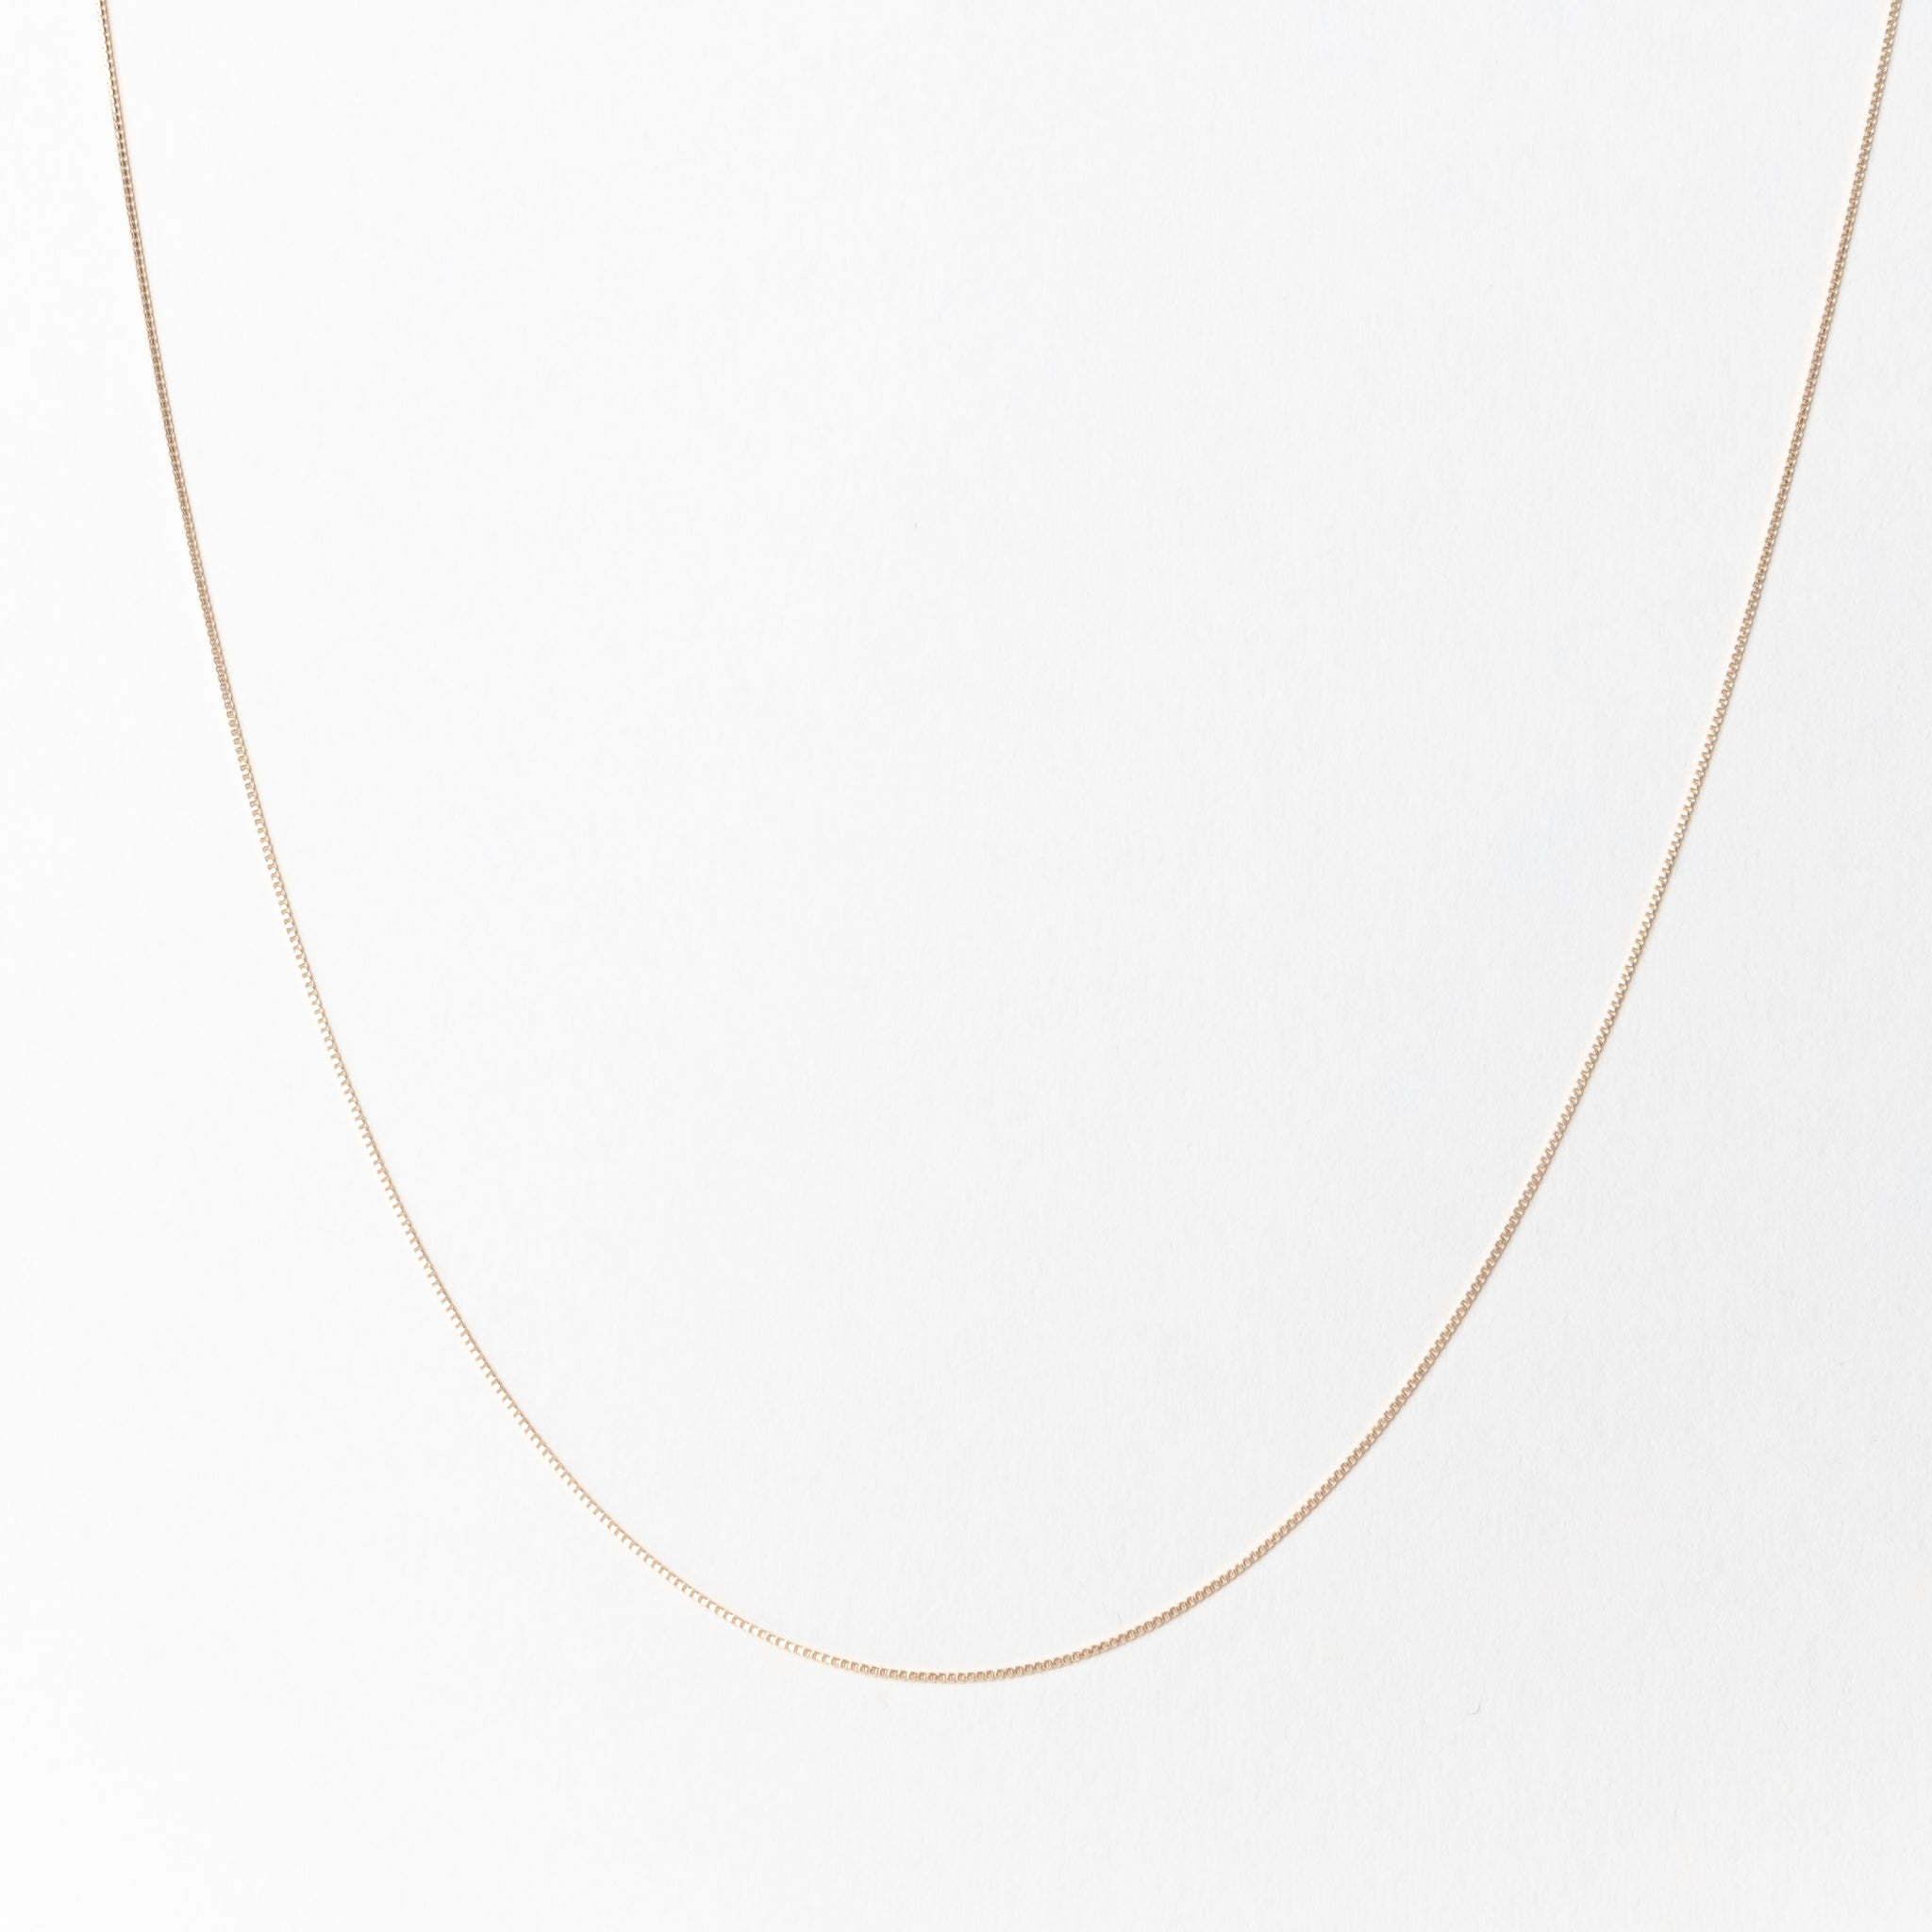 Everyday Thin Box Chain Necklace, Solid 18k Gold (5275514339372)